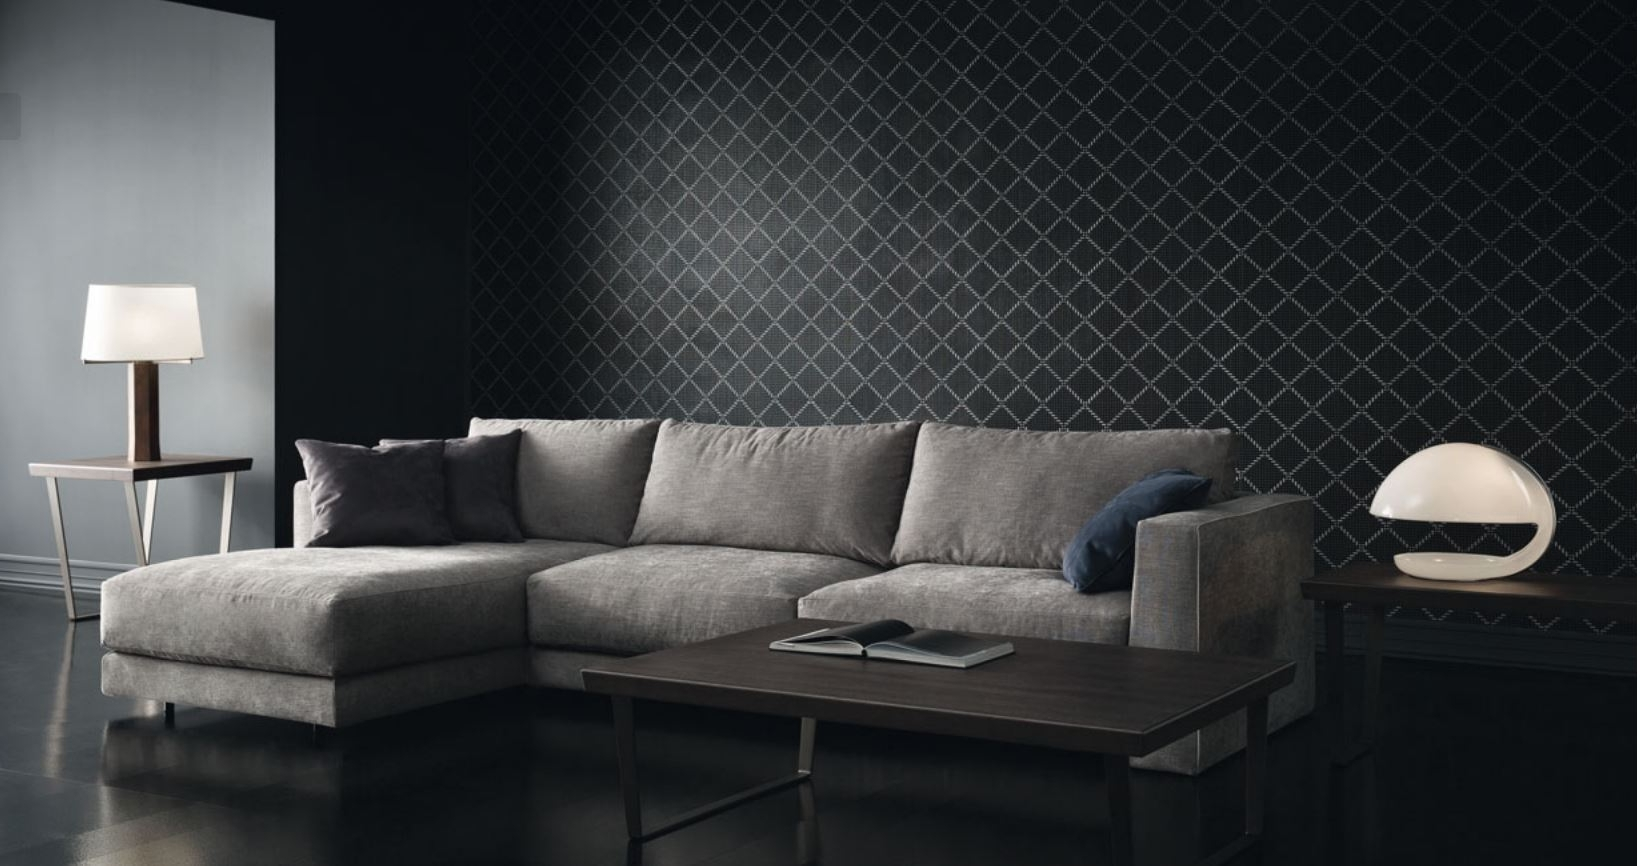 Latest Down Feather Sectional Sofas In Modern Sofas,modern Furniture,design Sofas – Sectional Modern Sofa (View 12 of 20)